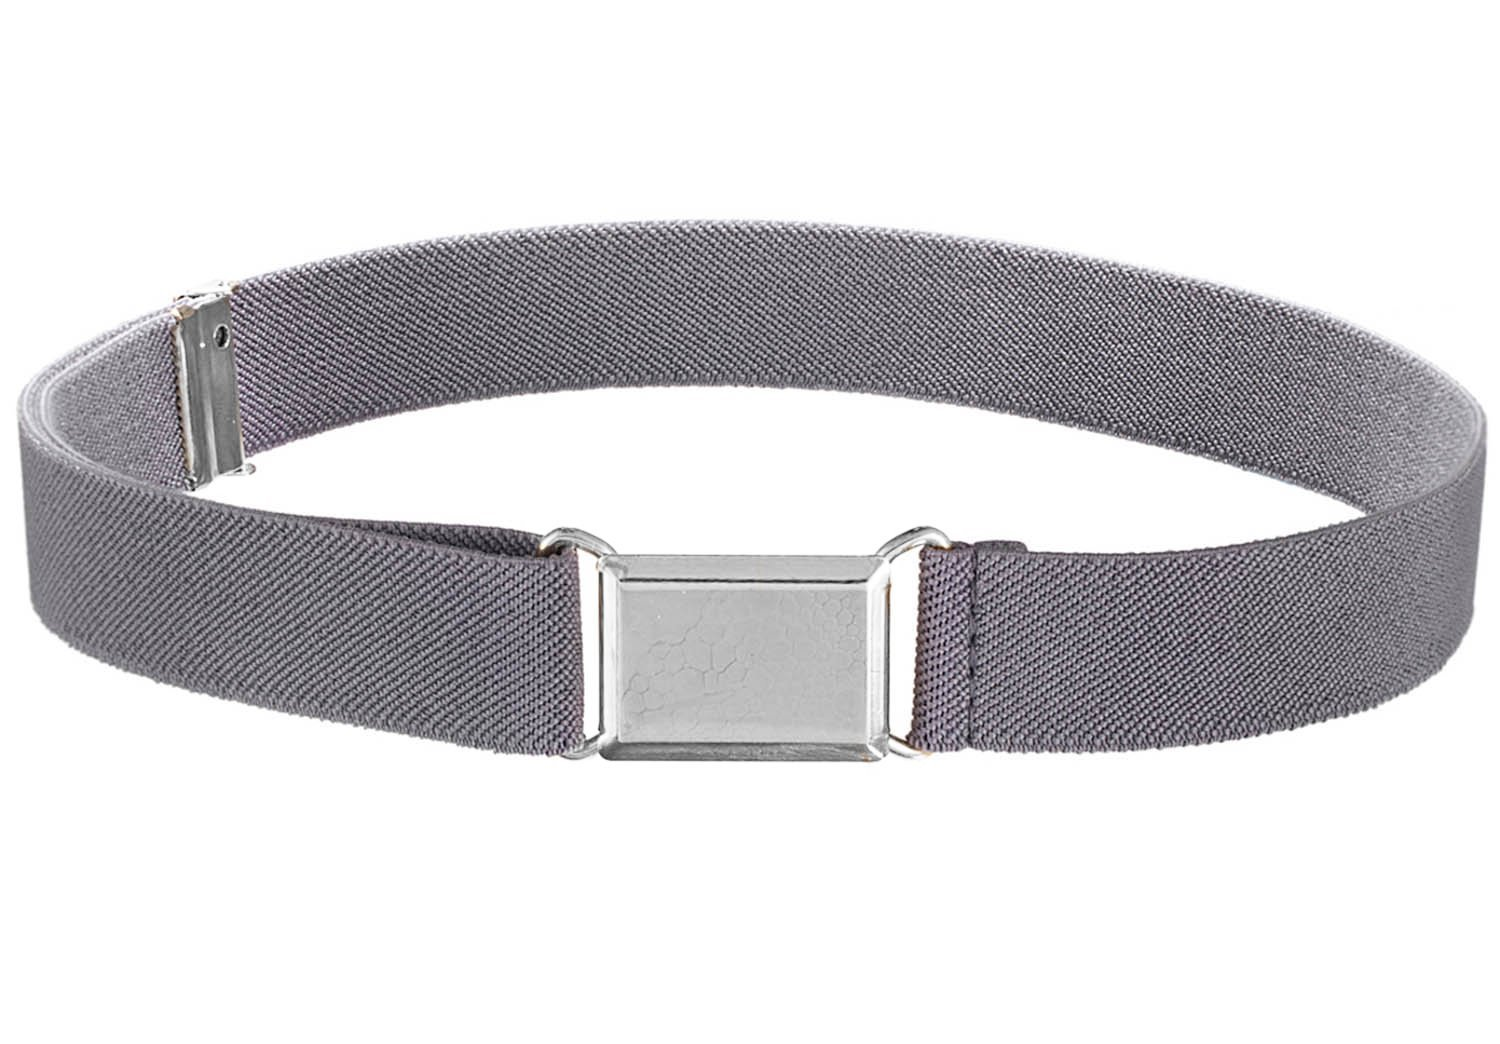 Kids Elastic Adjustable Strech Belt With Silver Square Buckle - Grey